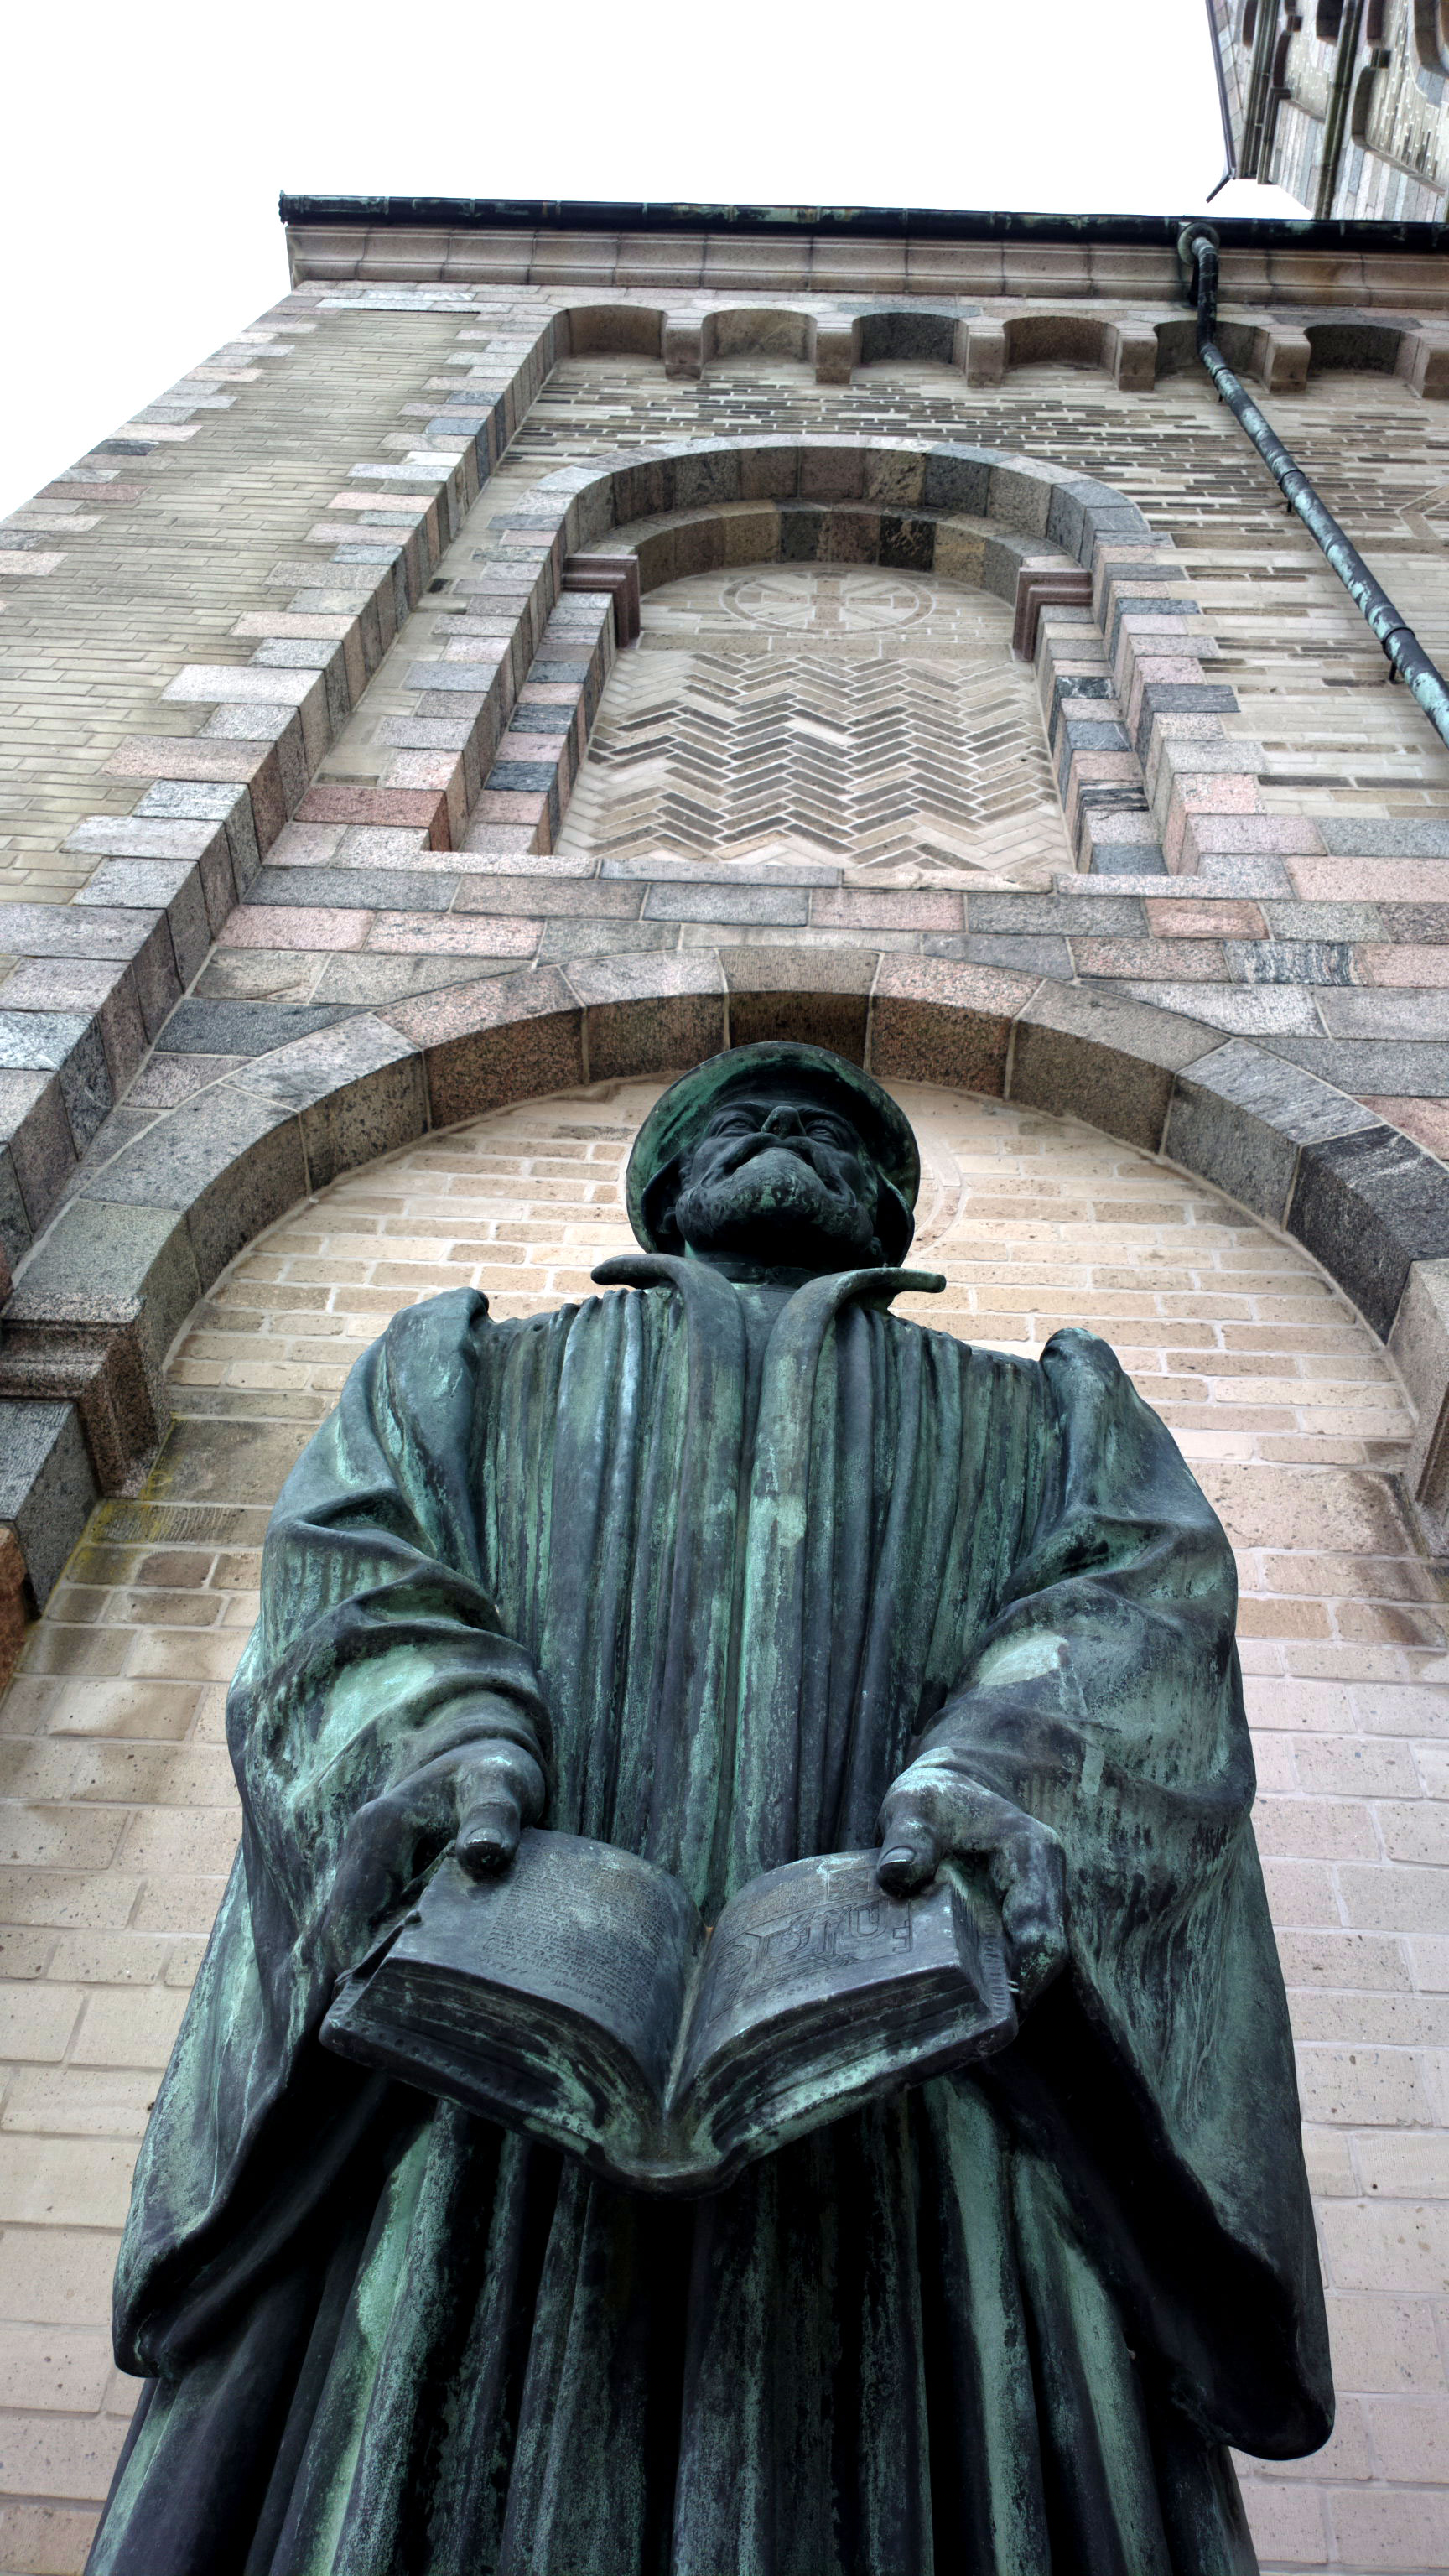 Statue of Hans Tausen in front of Ribe Cathedral